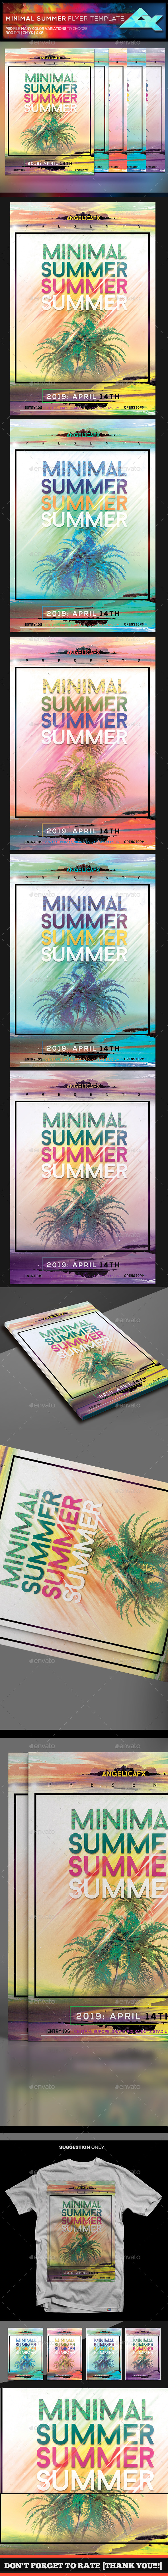 Minimal Summer Flyer Template - Flyers Print Templates